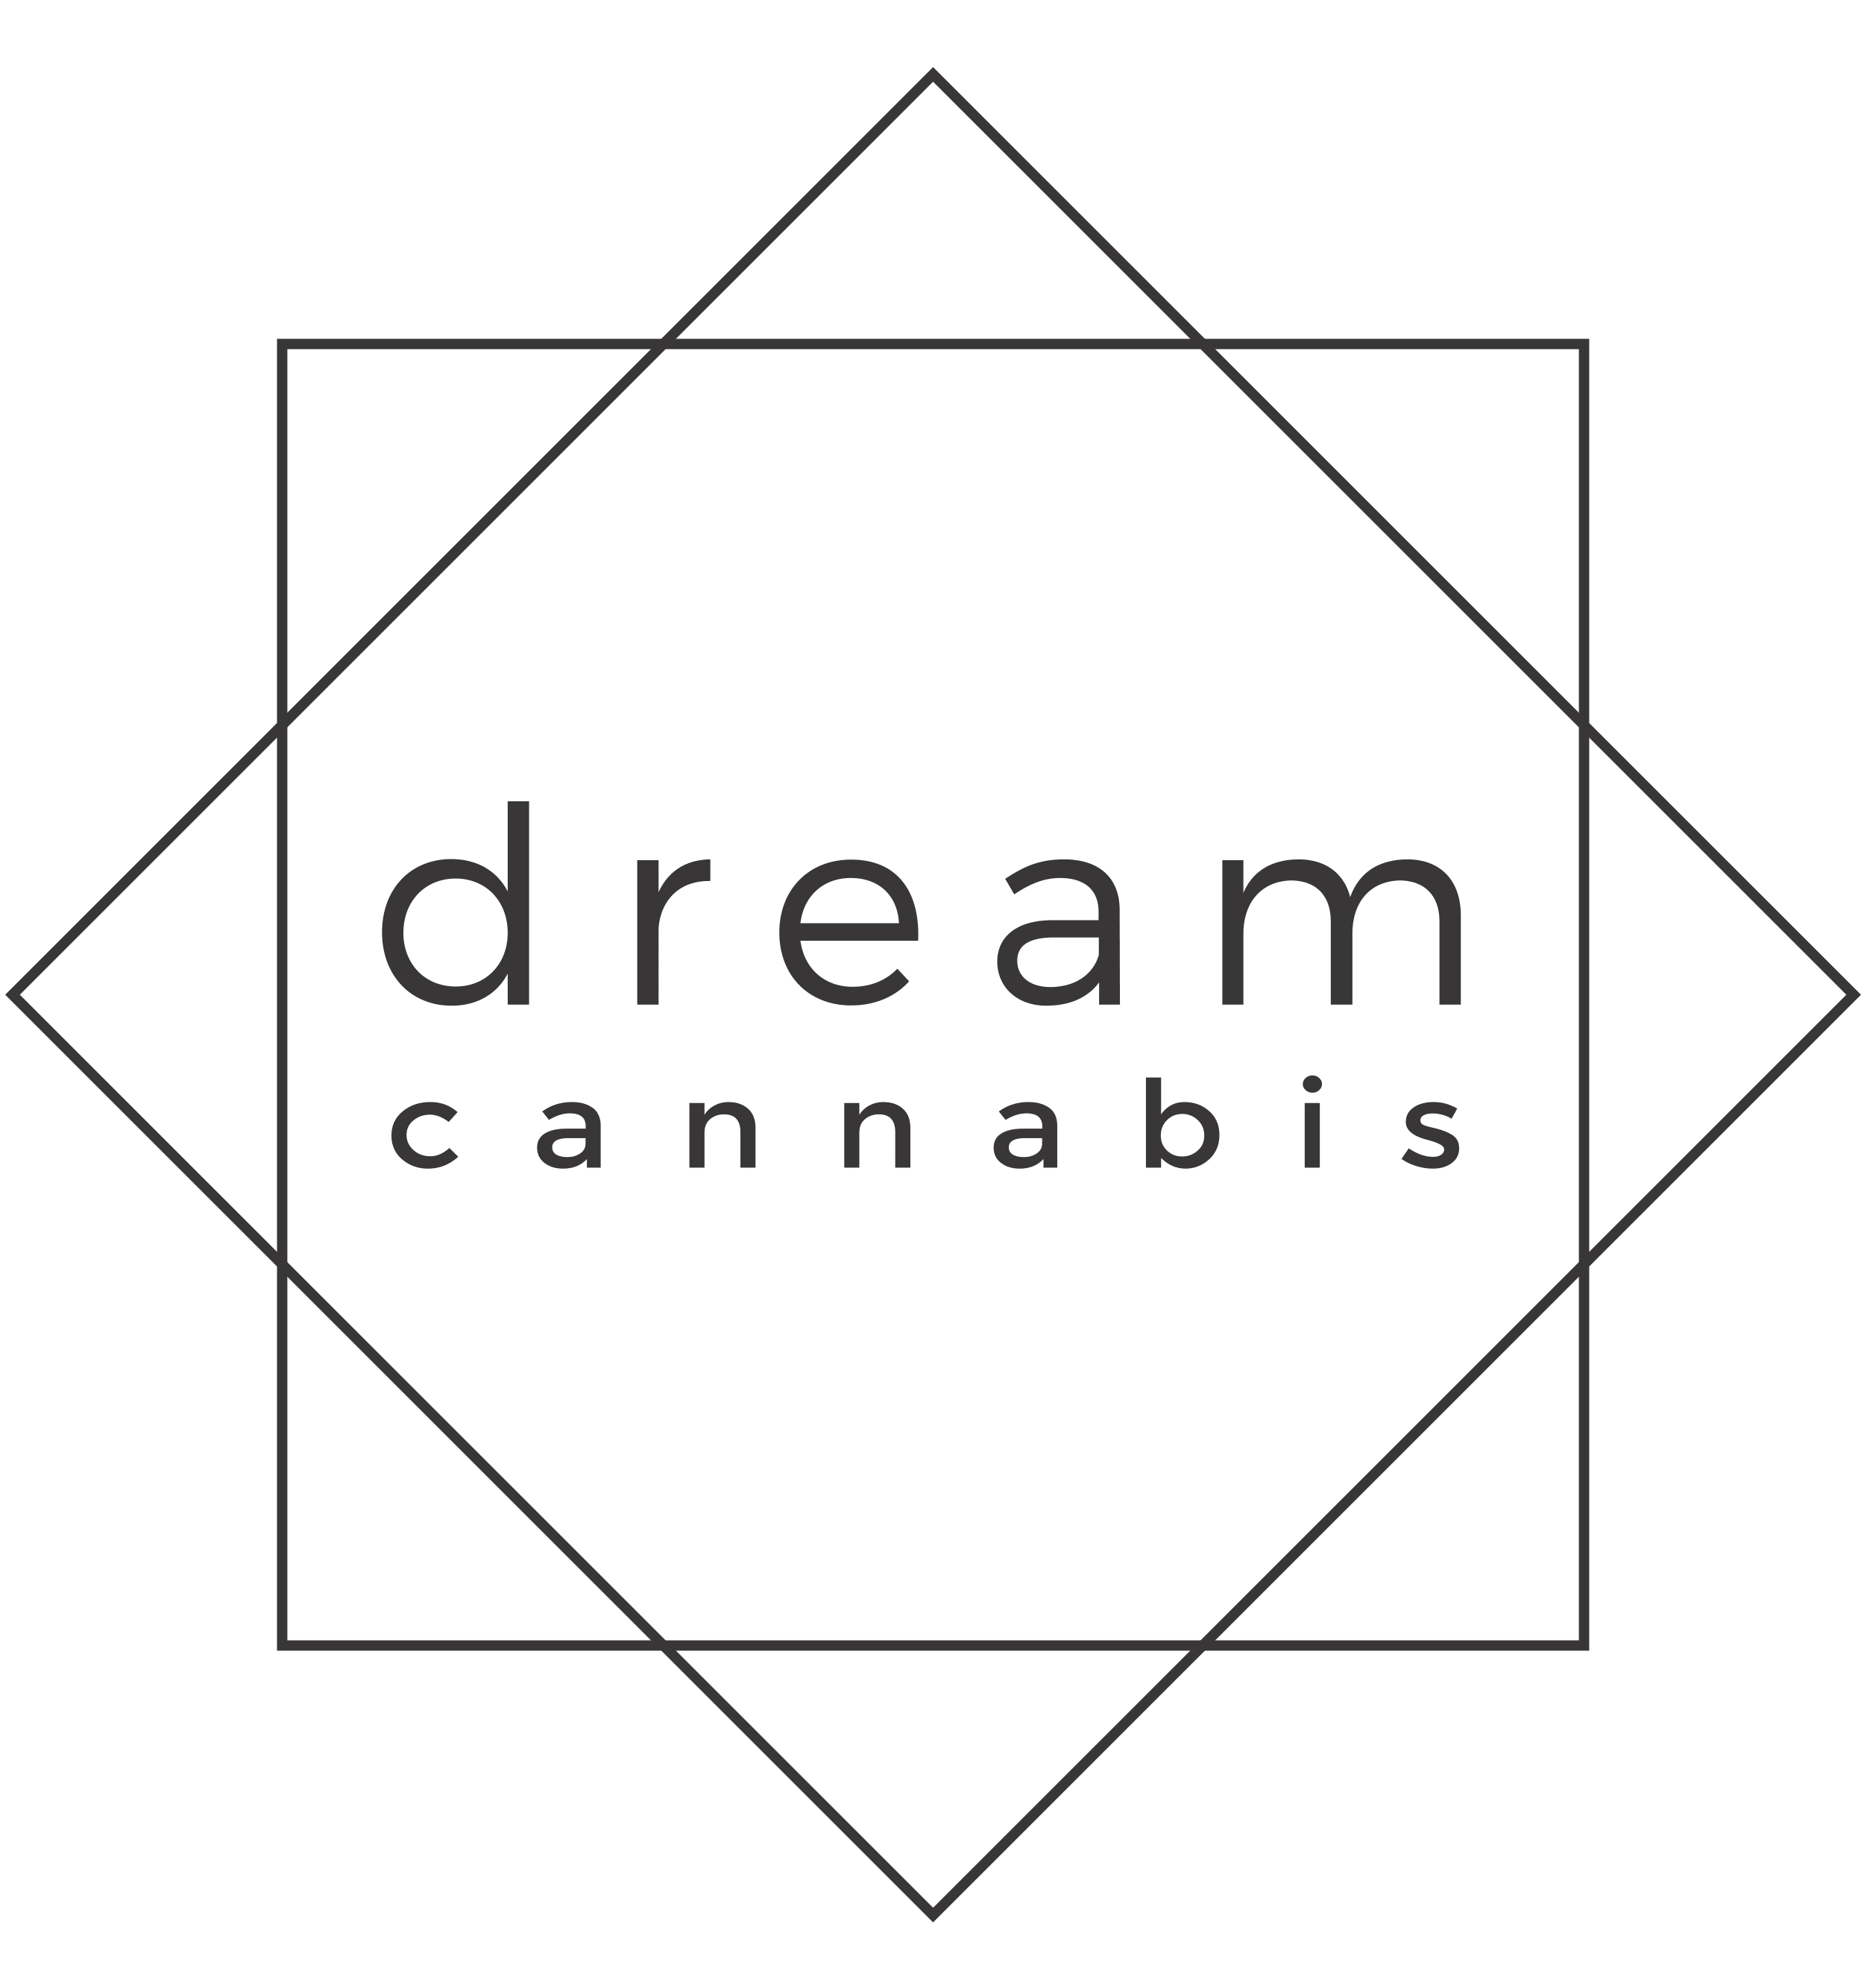 Dream Cannabis